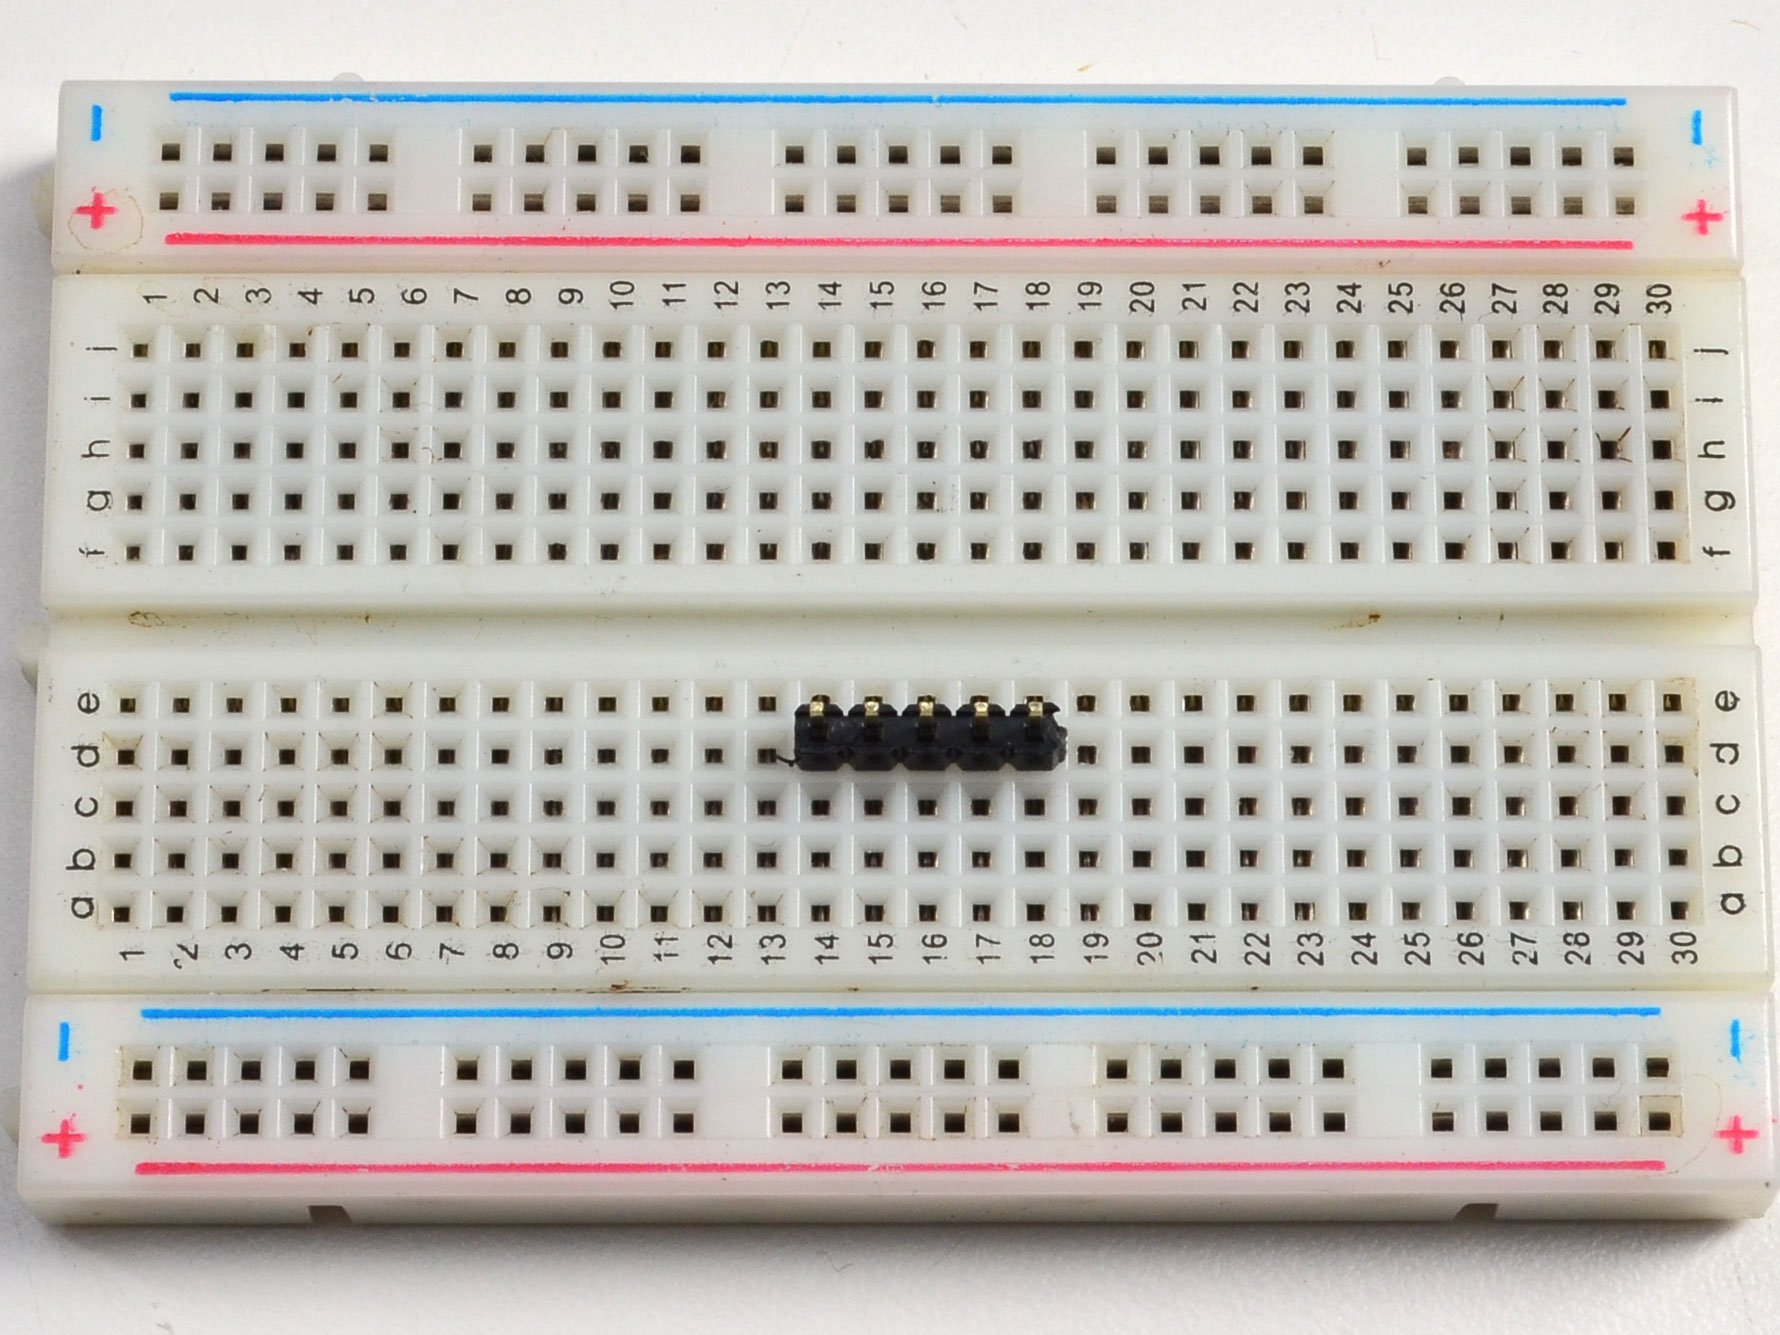 adafruit_products_header.jpg